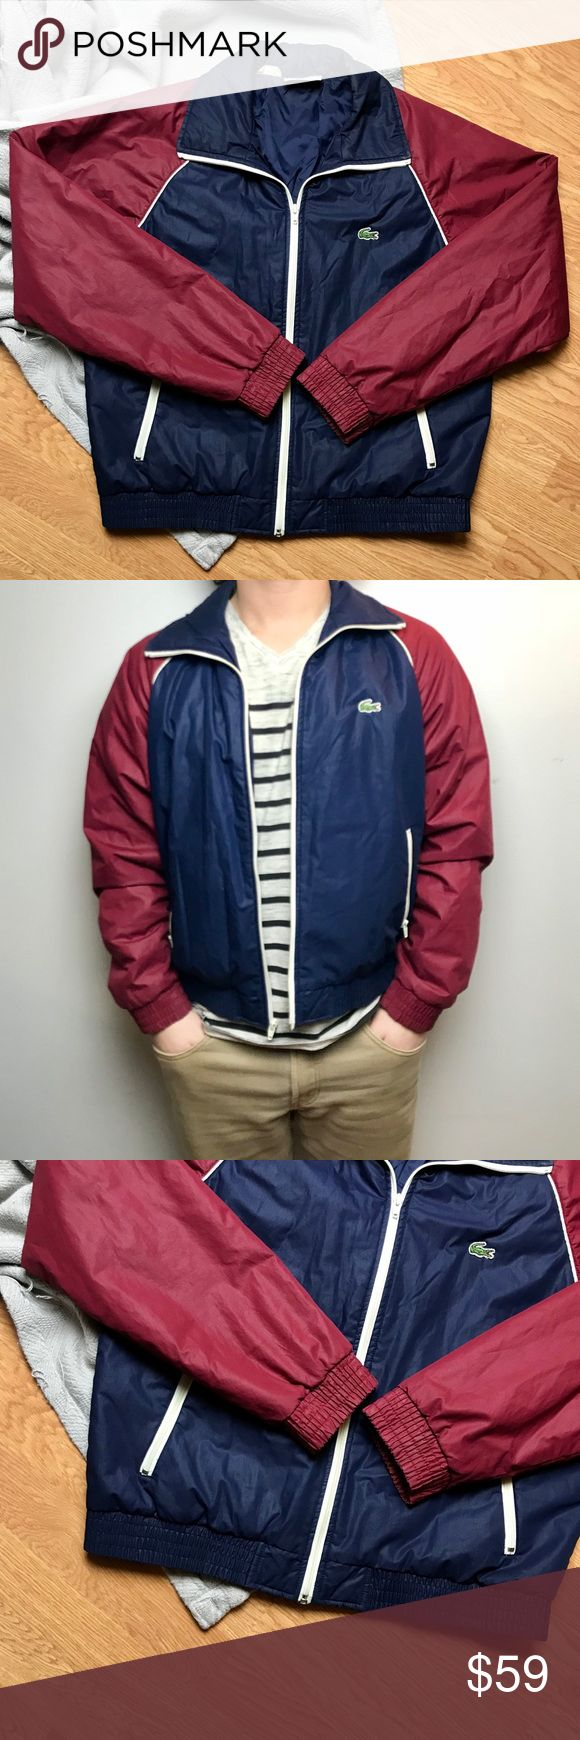 Vintage Lacoste Bomber Windbreaker Jacket Size L Dark blue and red vintage bomber jacket from Lacoste Izod! Off white/ cream color details the entire jacket. Traditional brand logo patch stitched on front of jacket. Two pockets on both sides for ease of storing essentials. Fully lined on the inside, elastic in ends of sleeves and bottom of jacket. Some wear but in great condition!  Men's size large Chest: 23.5 inches across  Length: 26 inches long  Sleeves: 21 inches long Lacoste Jackets…